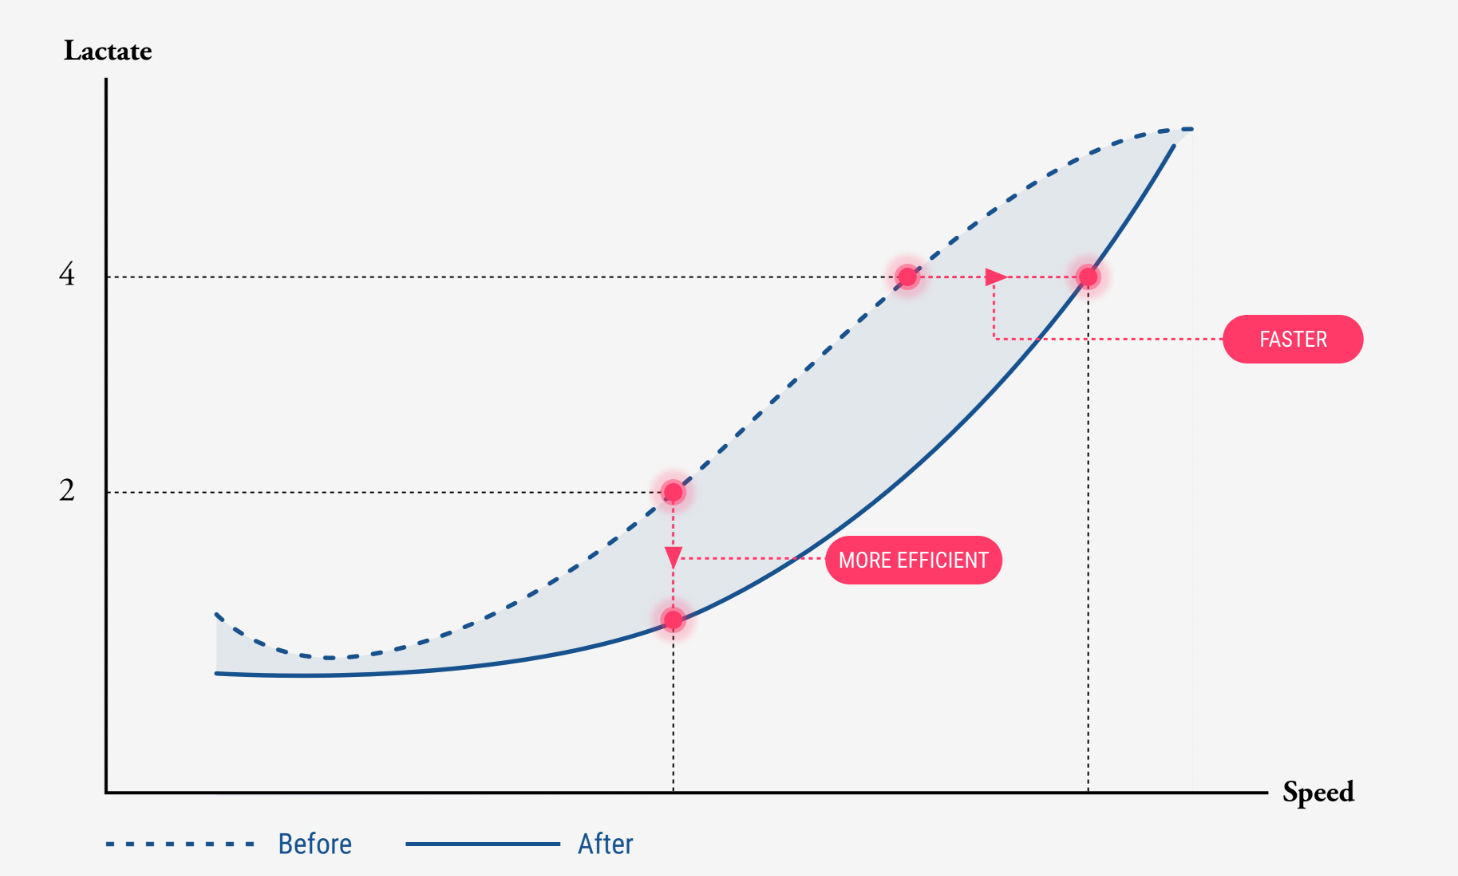 Lactate curve graph displaying before and after results